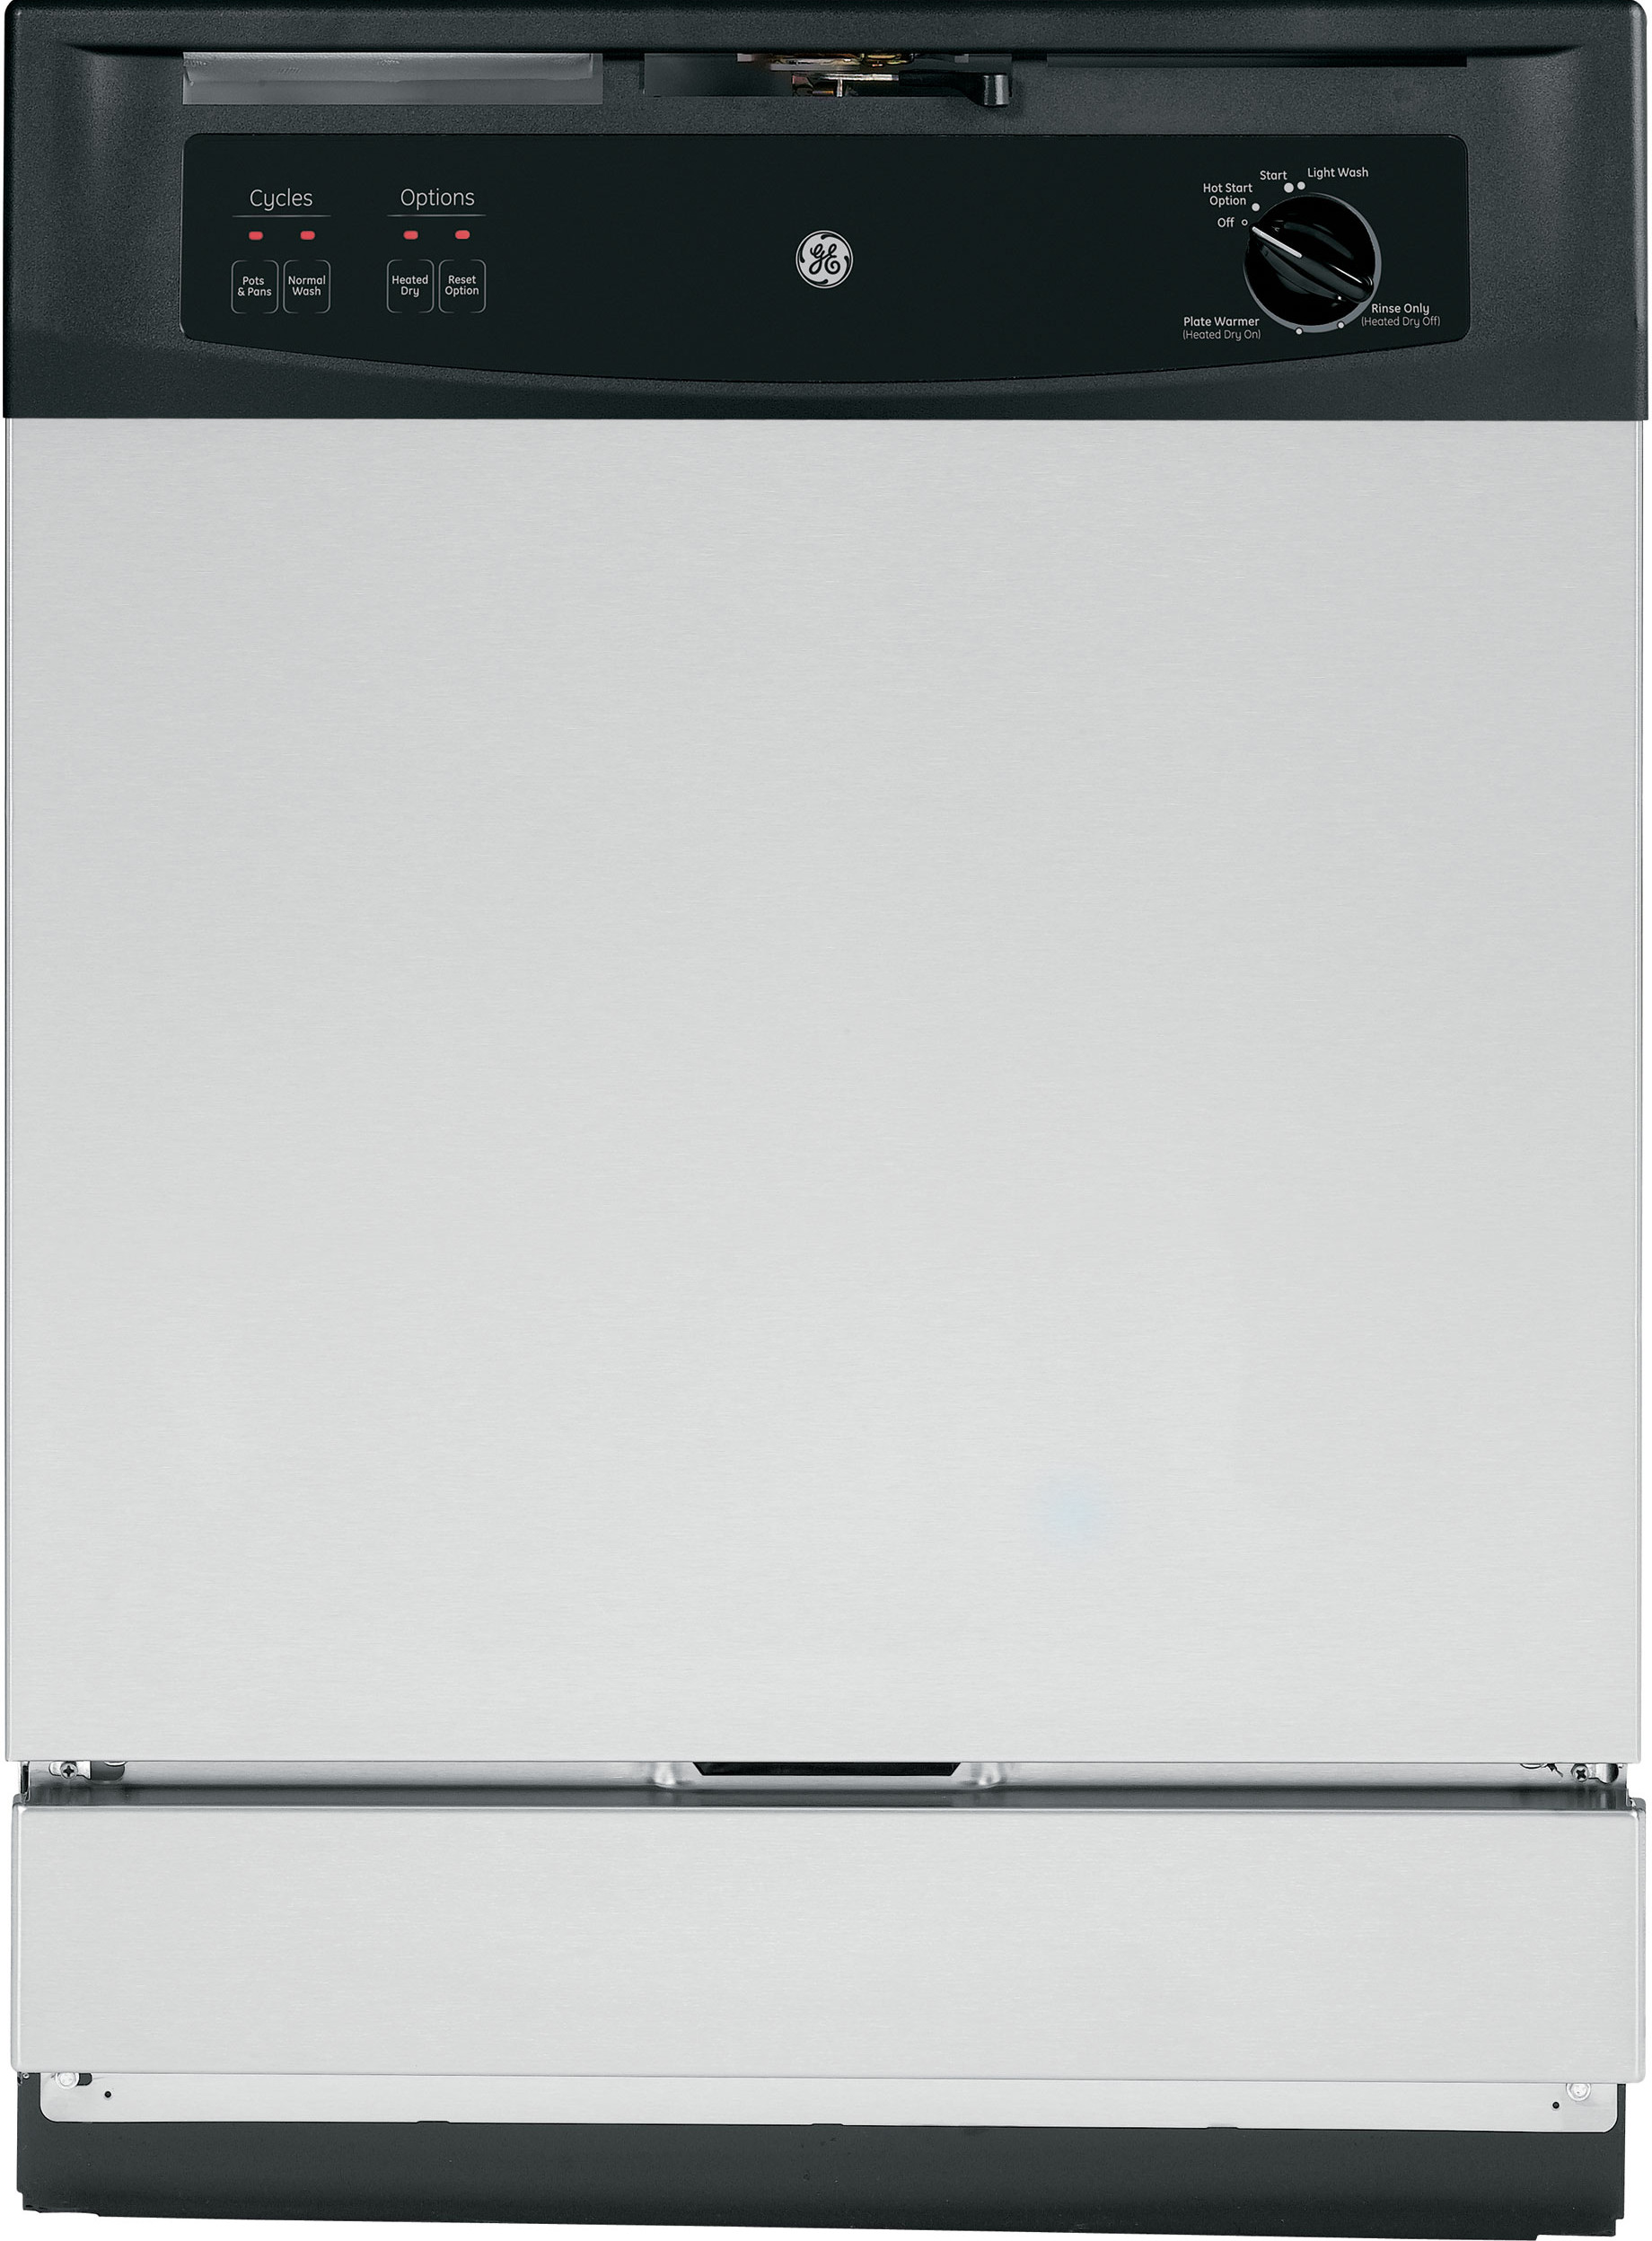 Ge Gsm2260vss Full Console Under The Sink Dishwasher With 12 Place Setting Capacity 5 Wash Cycles 64 Dba Silence Rating Spacemaker Upper Rack Piranha Hard Built In Dishwasher Sink Dishwasher